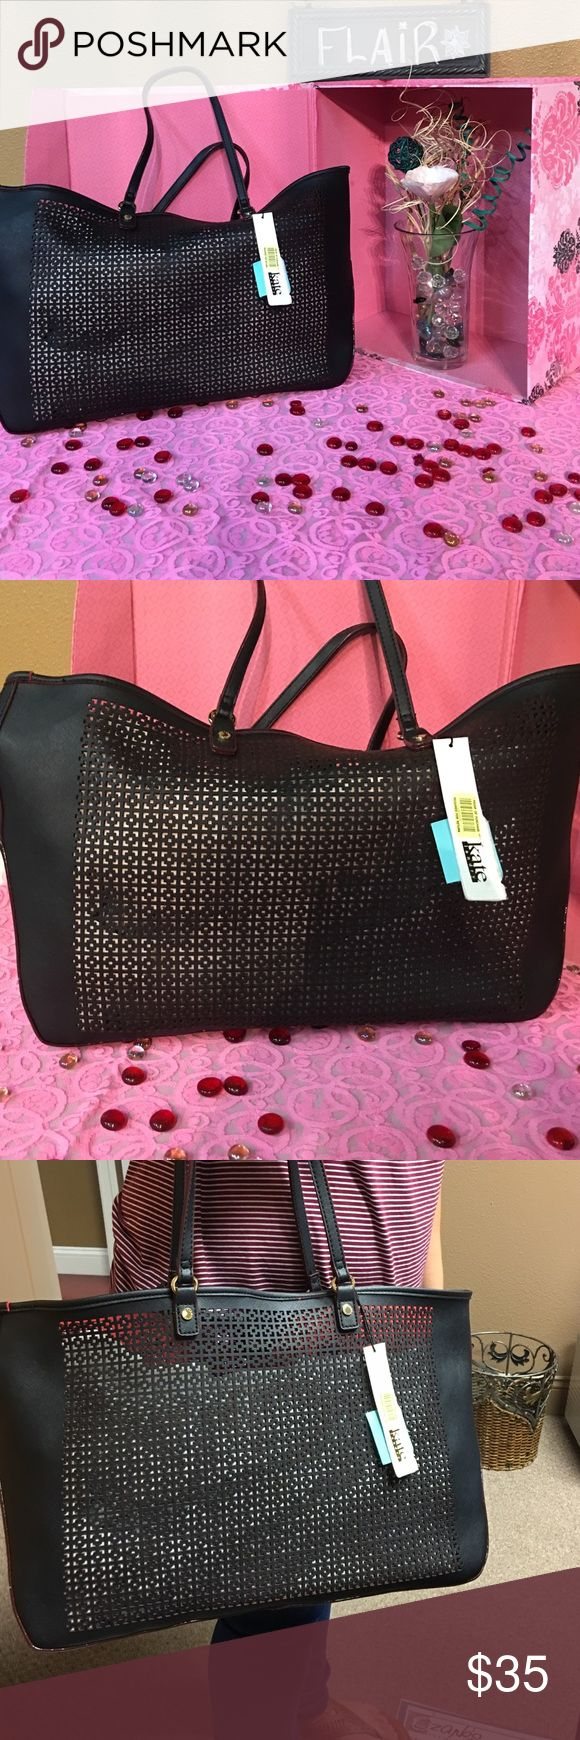 Kate Landry purse Black we've with gold hardware Kate Landry purse large type tote😃NWT! Cute,cute,cute Kate Landry Bags Shoulder Bags